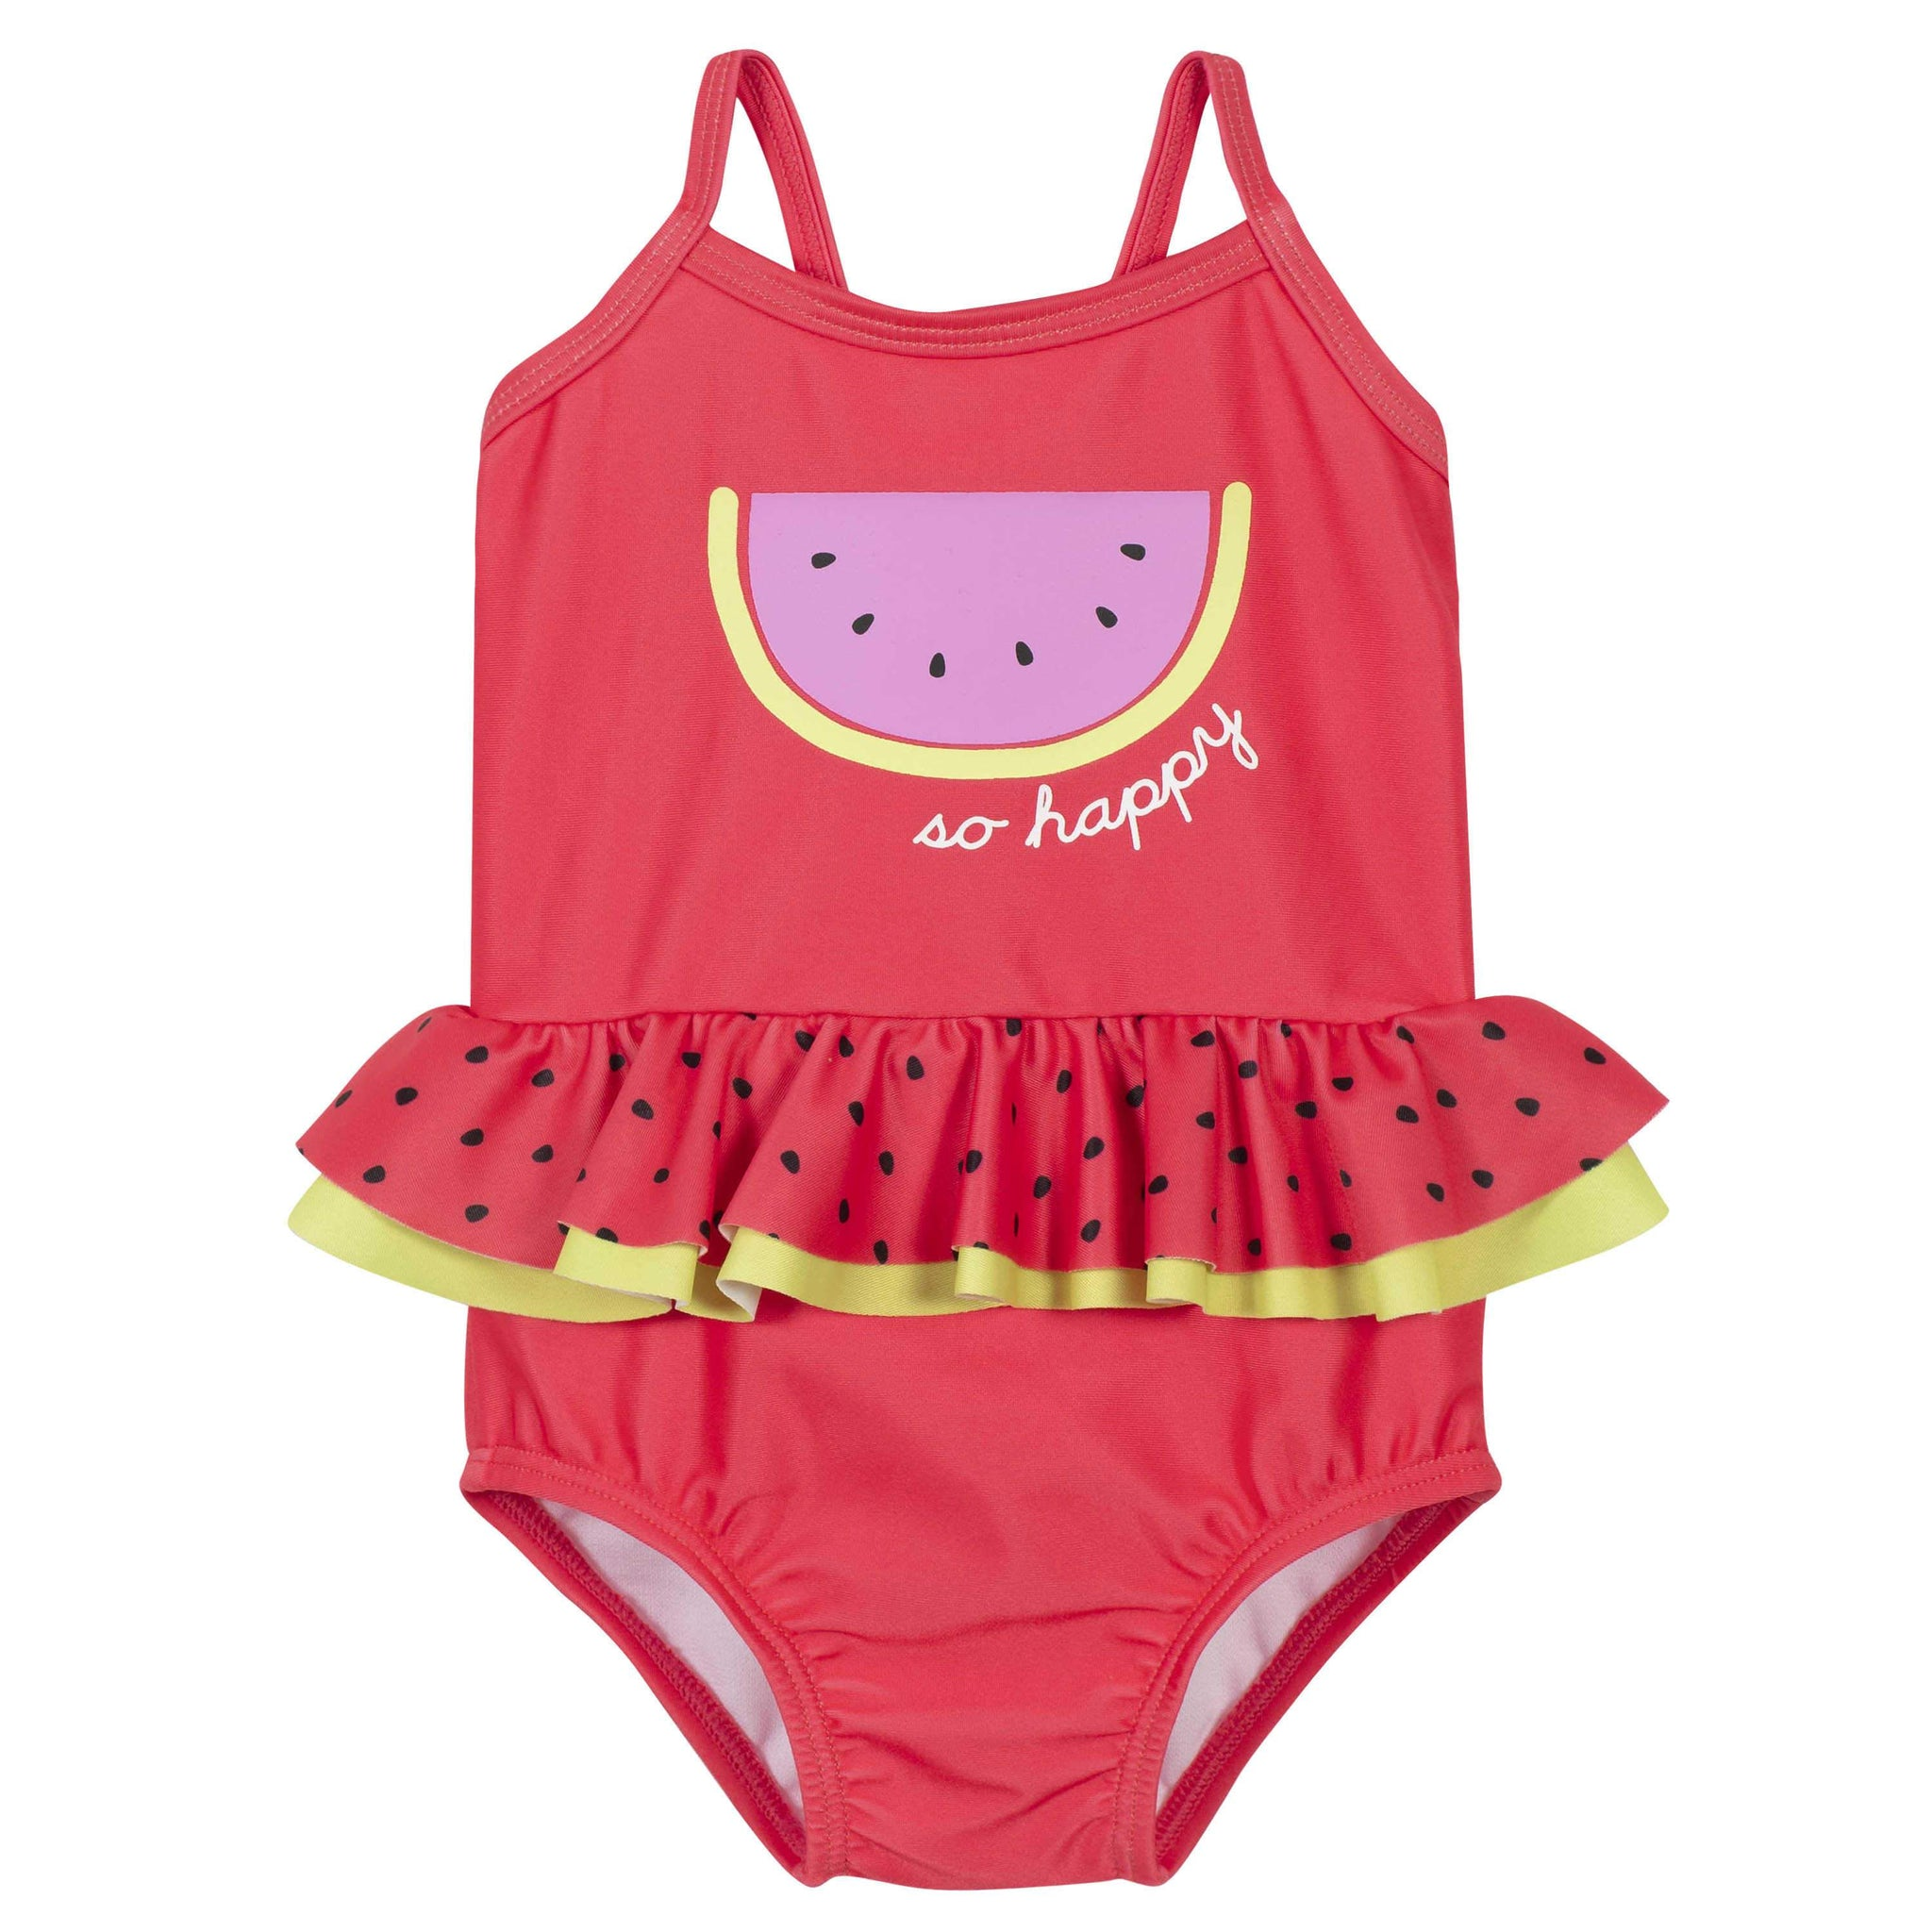 Gerber® One-piece Baby Girls Watermelon Swimsuit